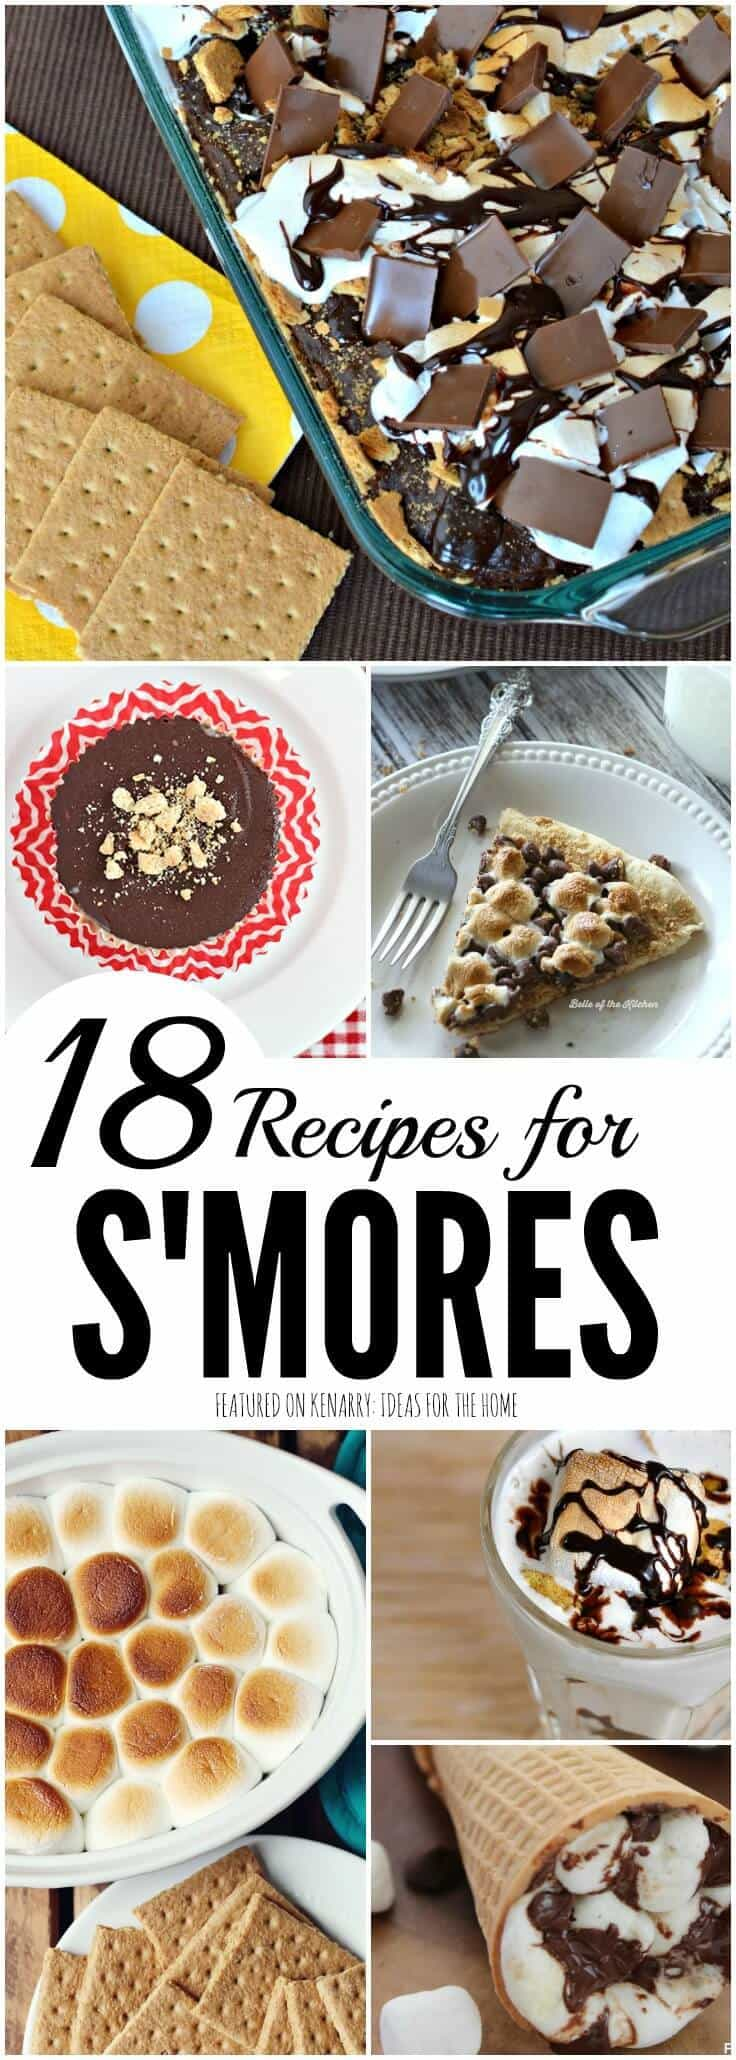 Who knew you could make s'mores so many different ways? This collection of 18 s'mores recipes includes ideas for cakes, cupcakes, bars, milkshakes, smoothies and even popcorn! These desserts are perfect for summer, National S'mores Day or any time of the year.